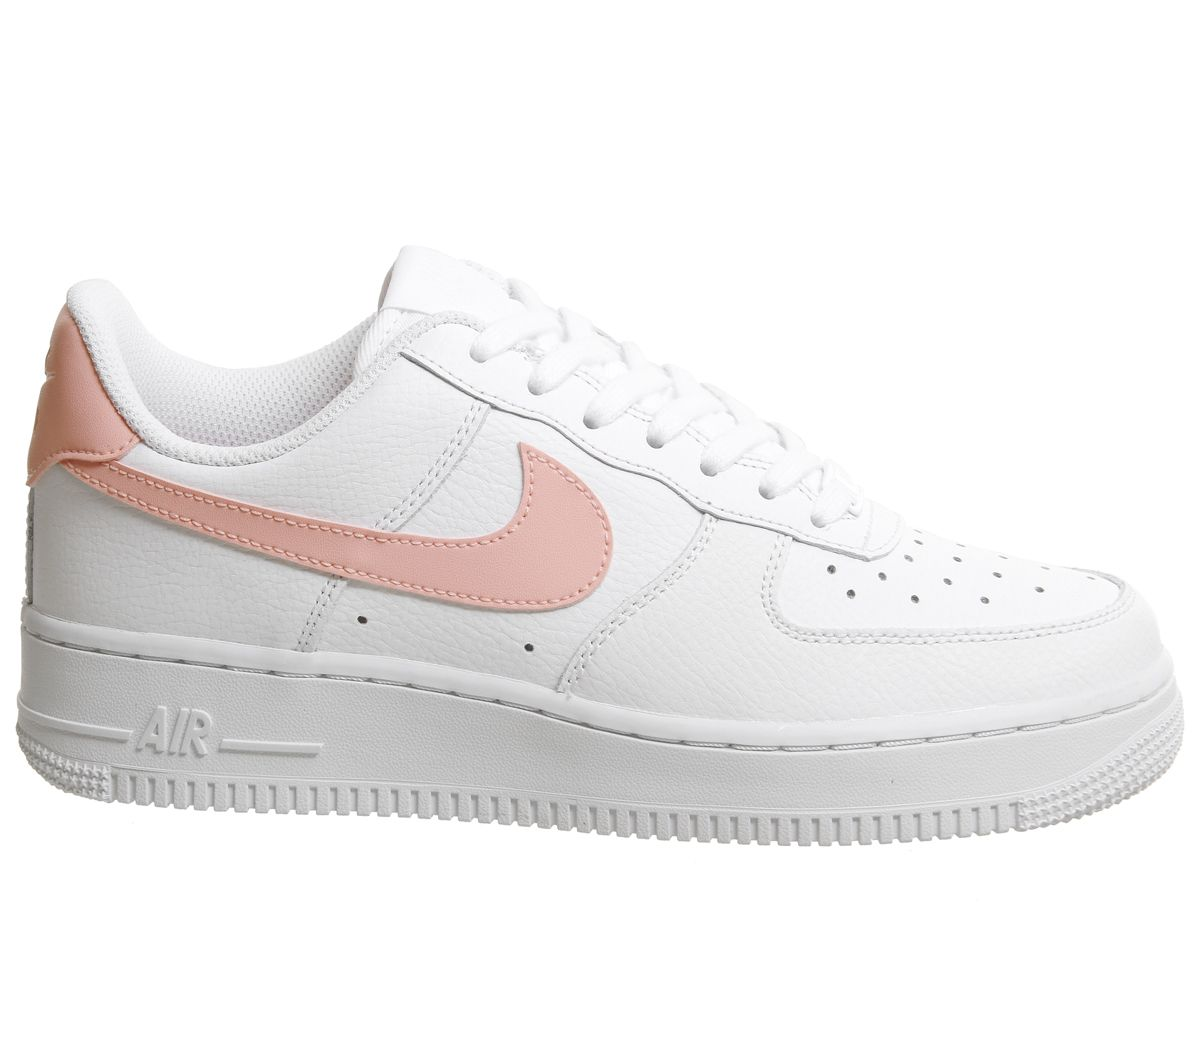 pretty nice cf4f3 aaf3f The new Nike Air Force 1 07 Patent White Oracle Pink womens shoe is is one  of the top Nike releases of the summer in 2018.